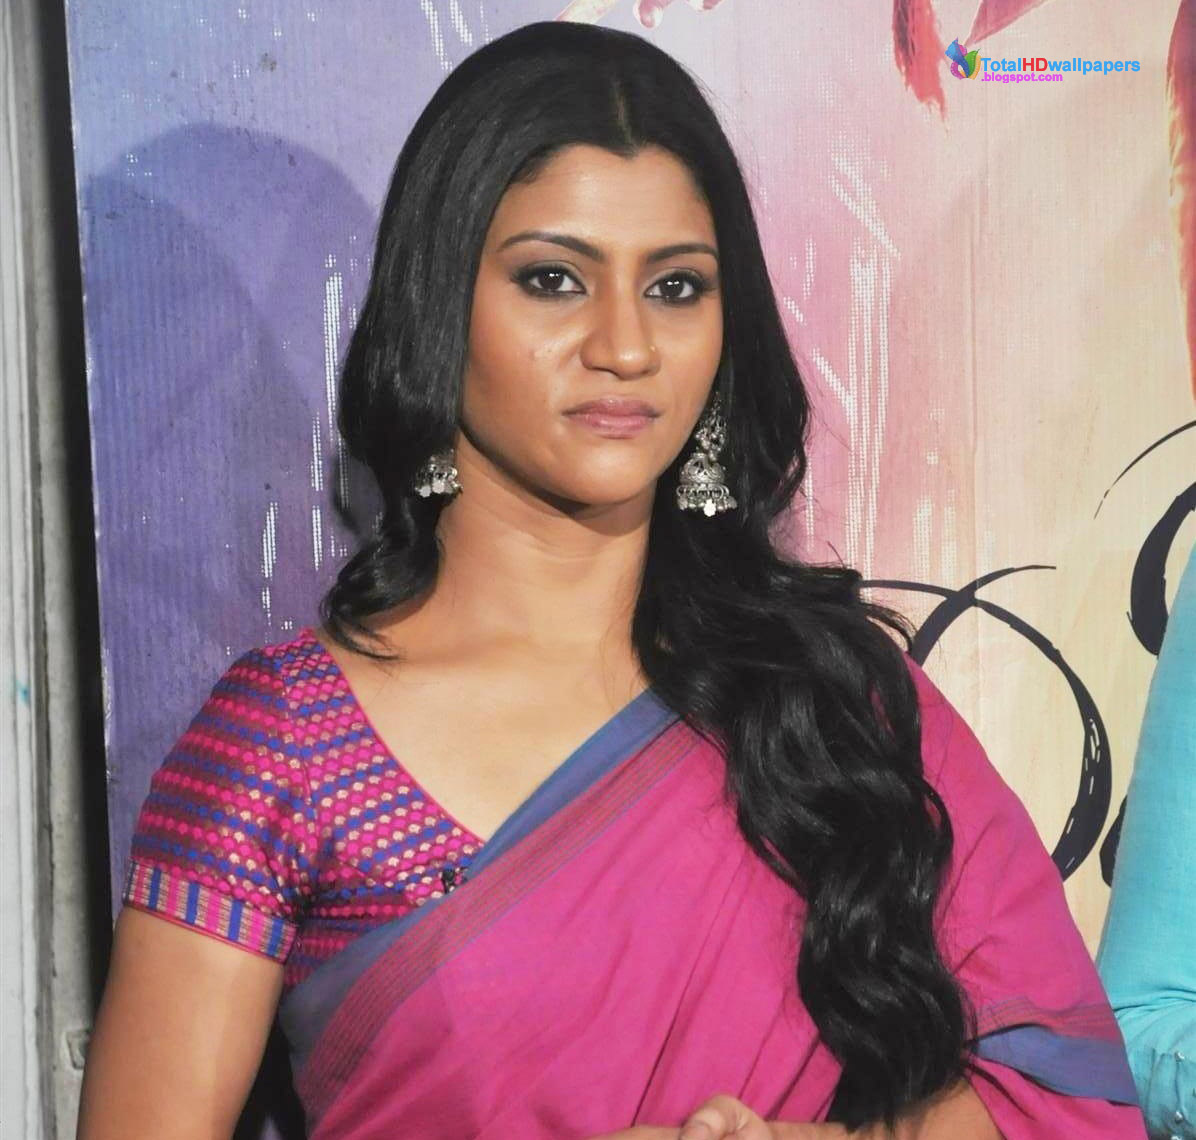 name konkona sen sharma birthday december 3 rd 1979 birth place new delhi india marital status married to ranvir shorey awards 2 national awards